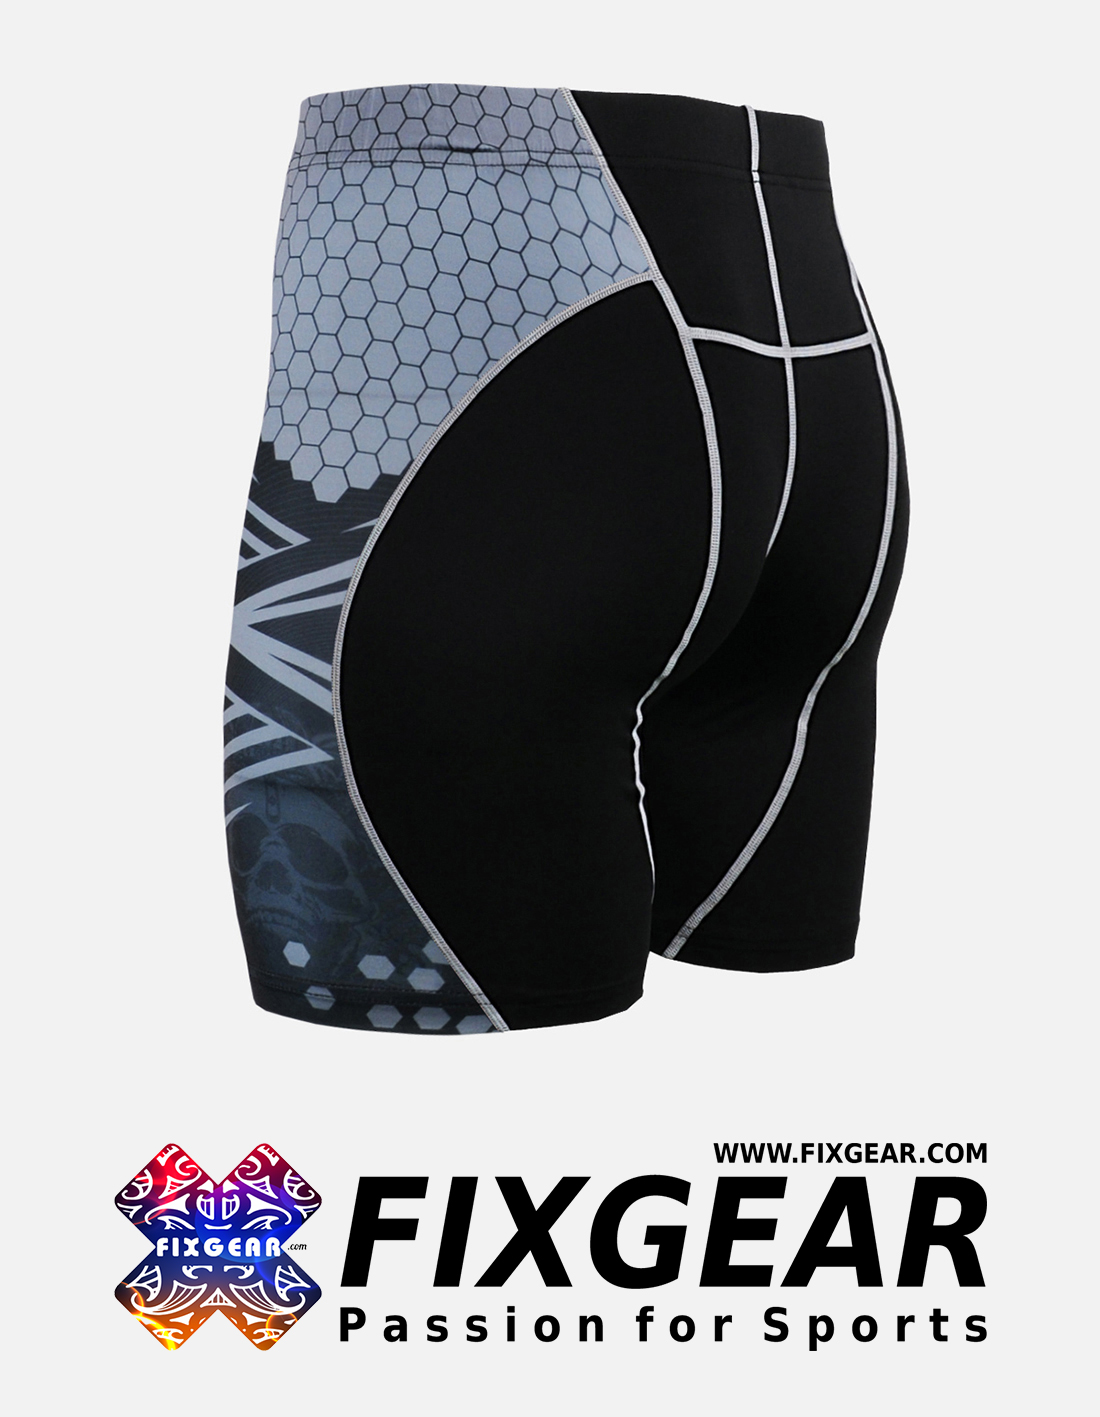 FIXGEAR P2S-B41 Compression Drawer Shorts